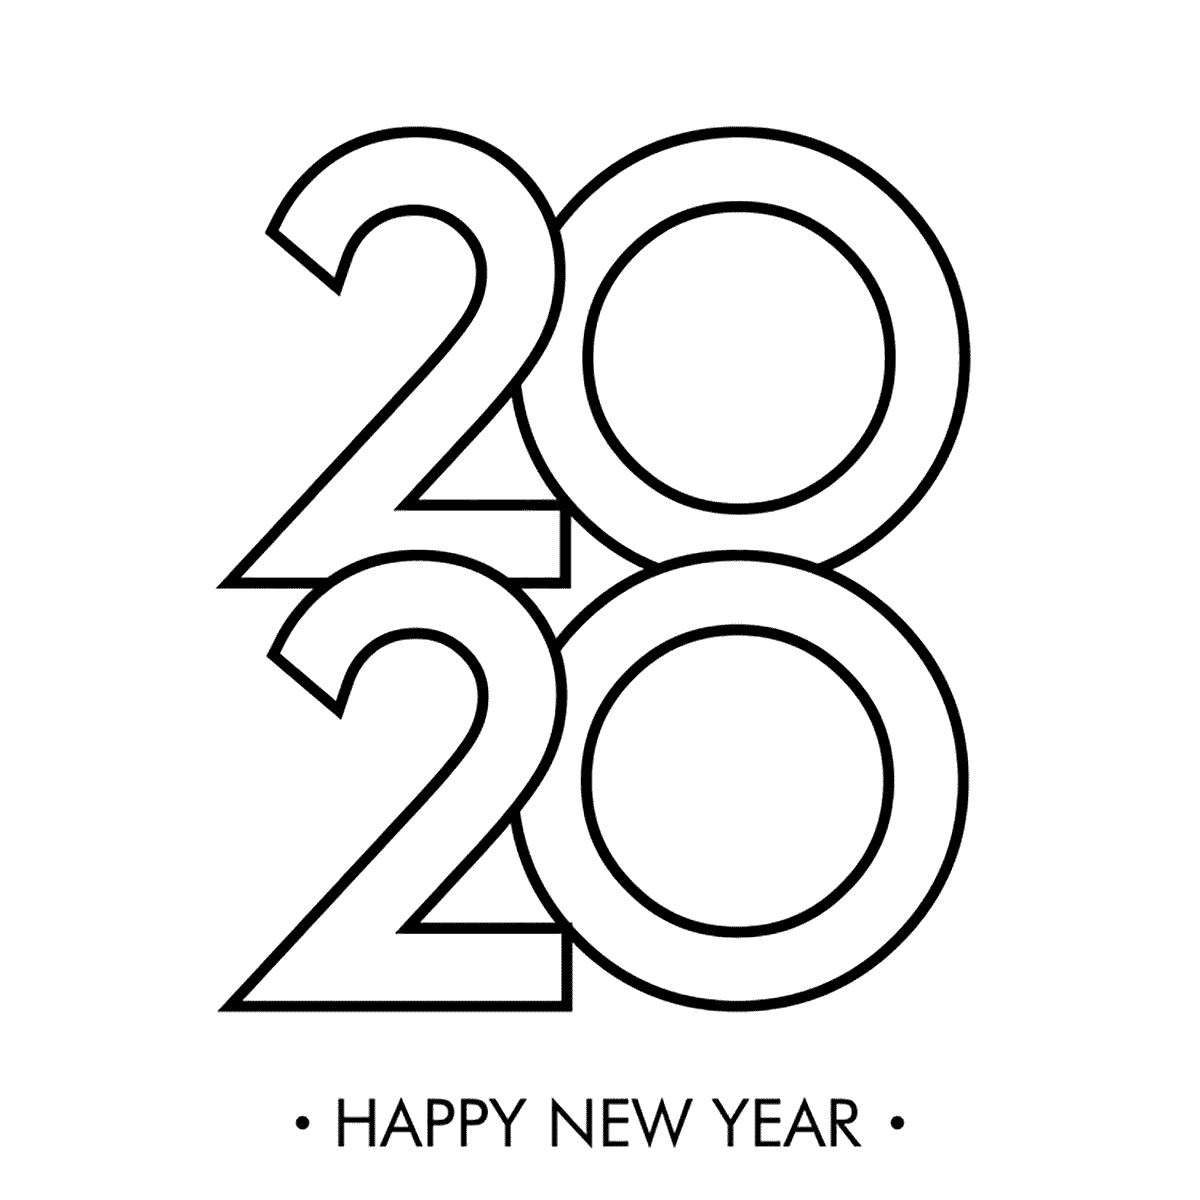 New Year 2020 Colouring Pages